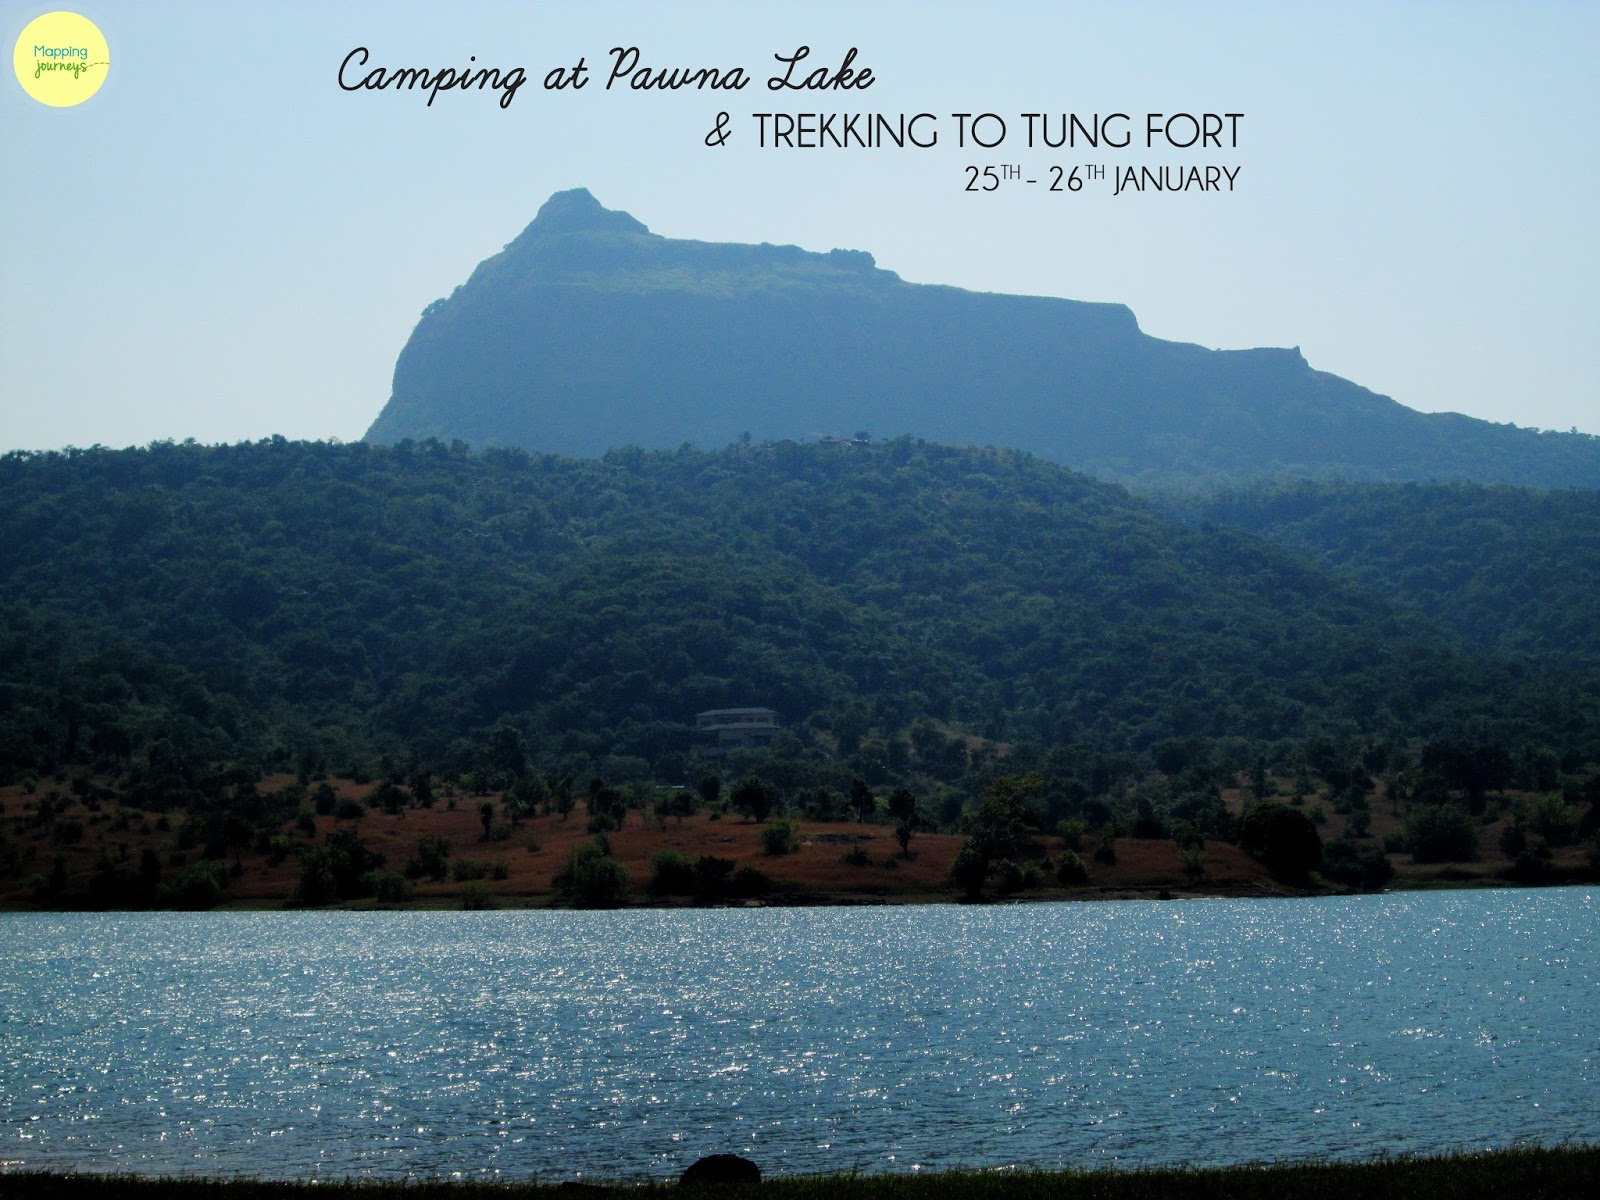 Camping at Pawna Dam and Trekking to Tung Fort !